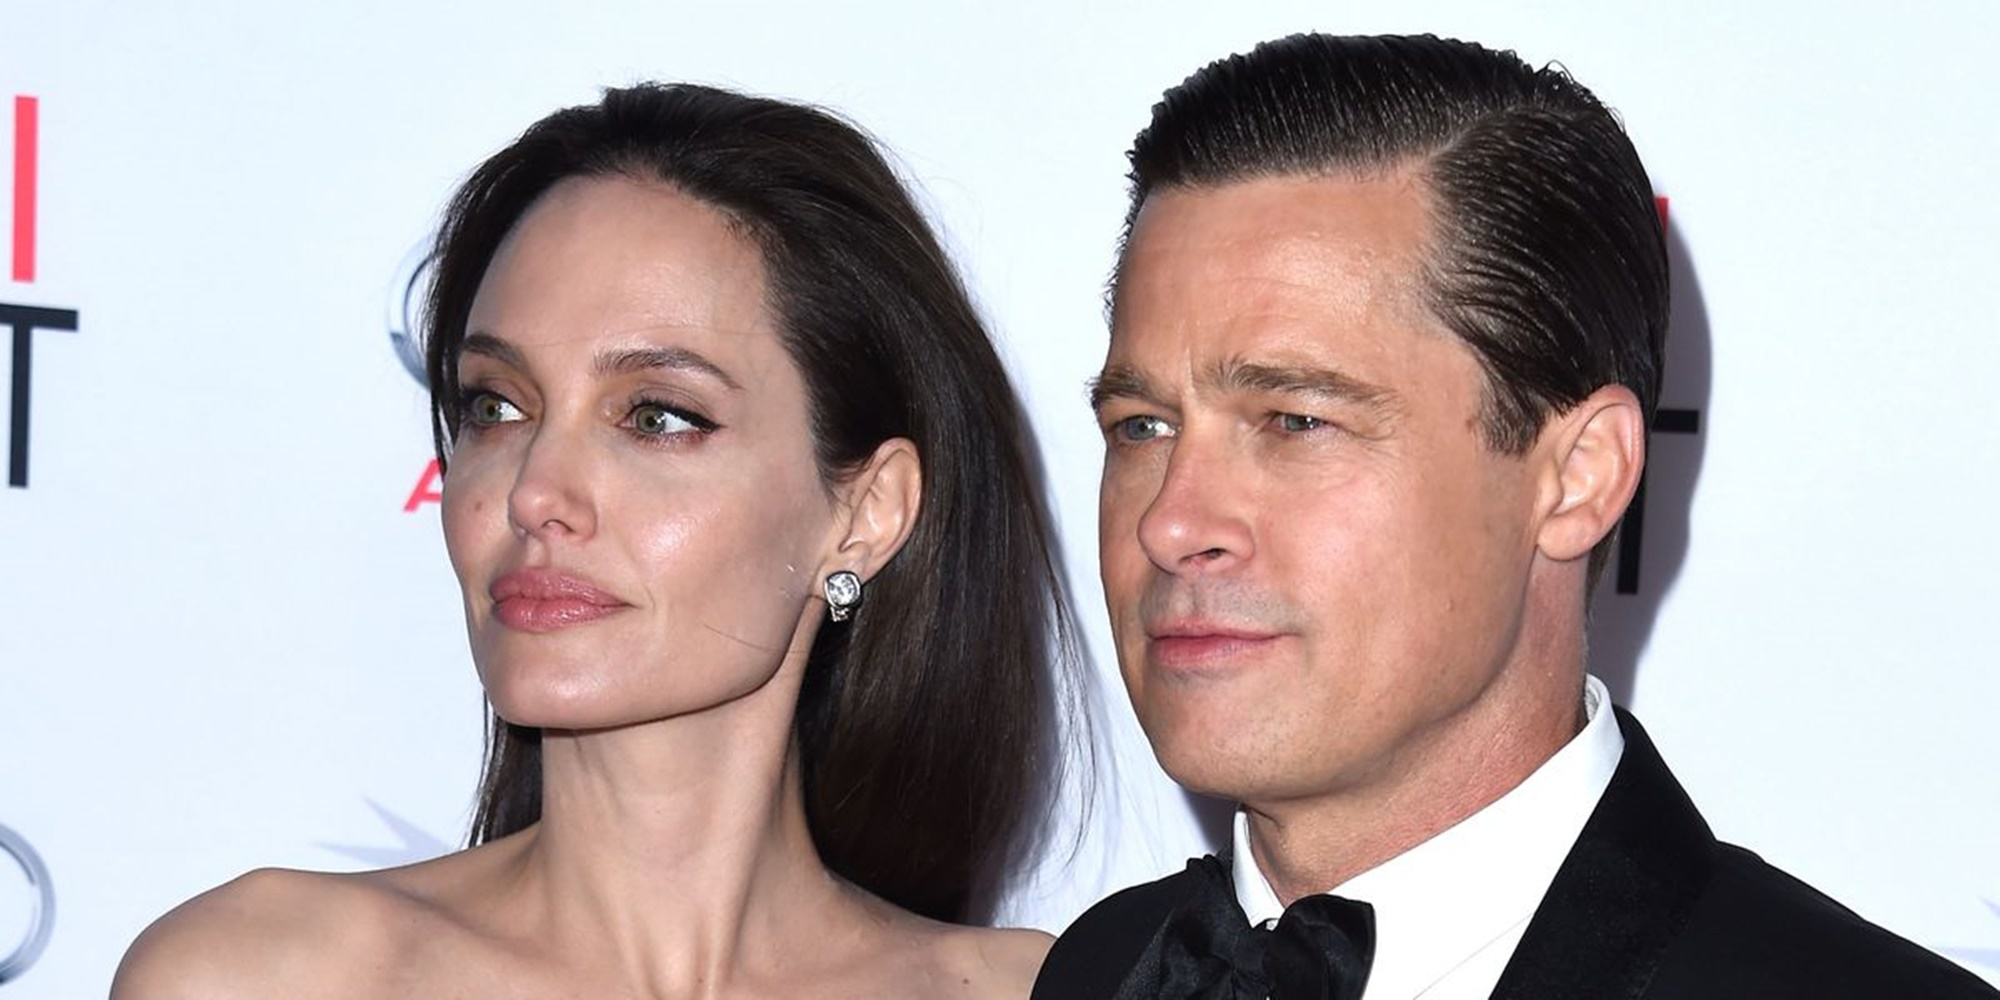 Angelina Jolie drops Pitt from her name officially